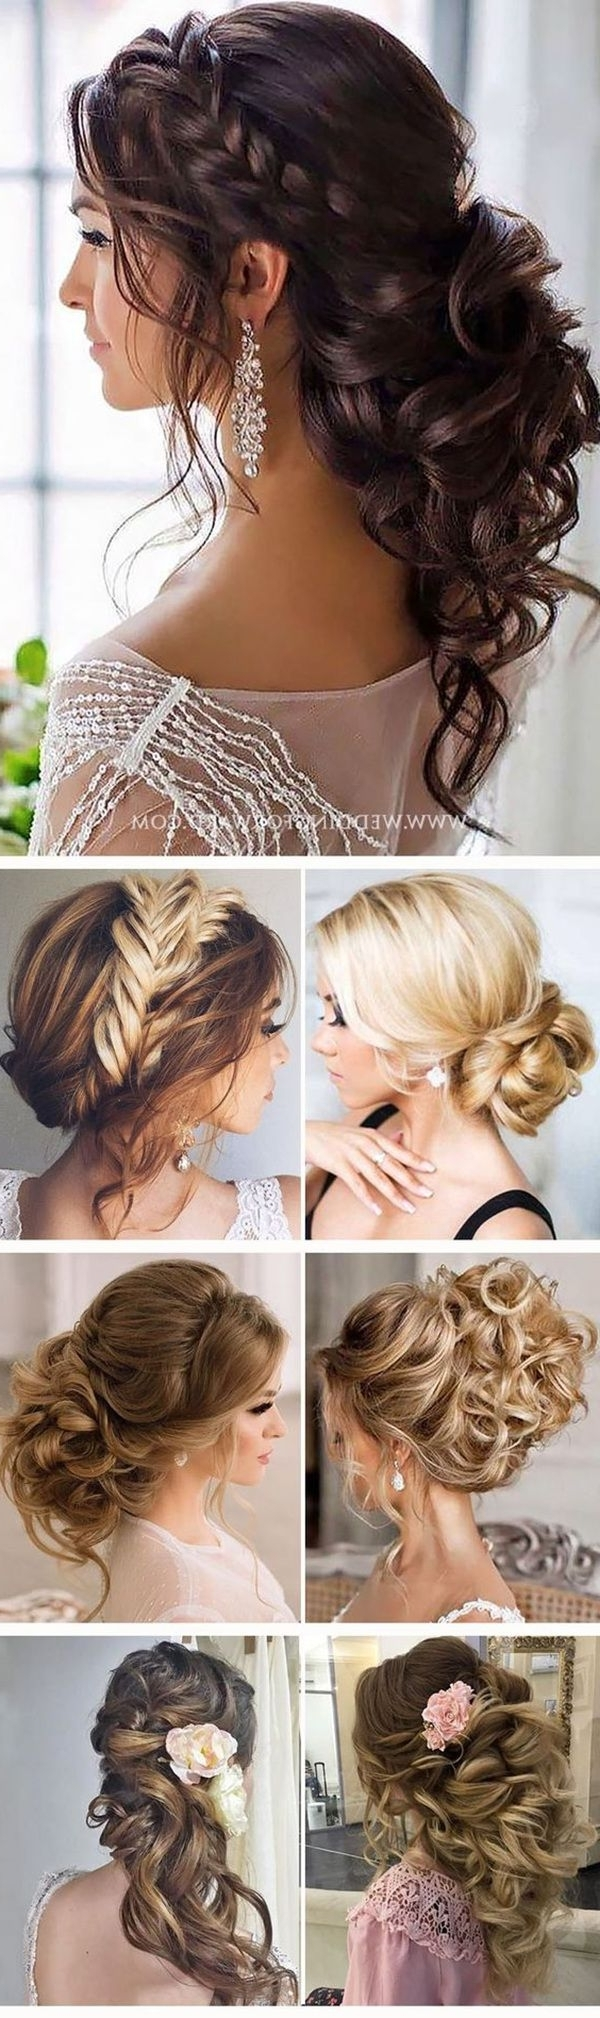 Updo Hairstyles For Long Thick Hair Impressive Updos Prom Braided Pertaining To Well Known Wedding Hairstyles For Long Thick Curly Hair (View 13 of 15)